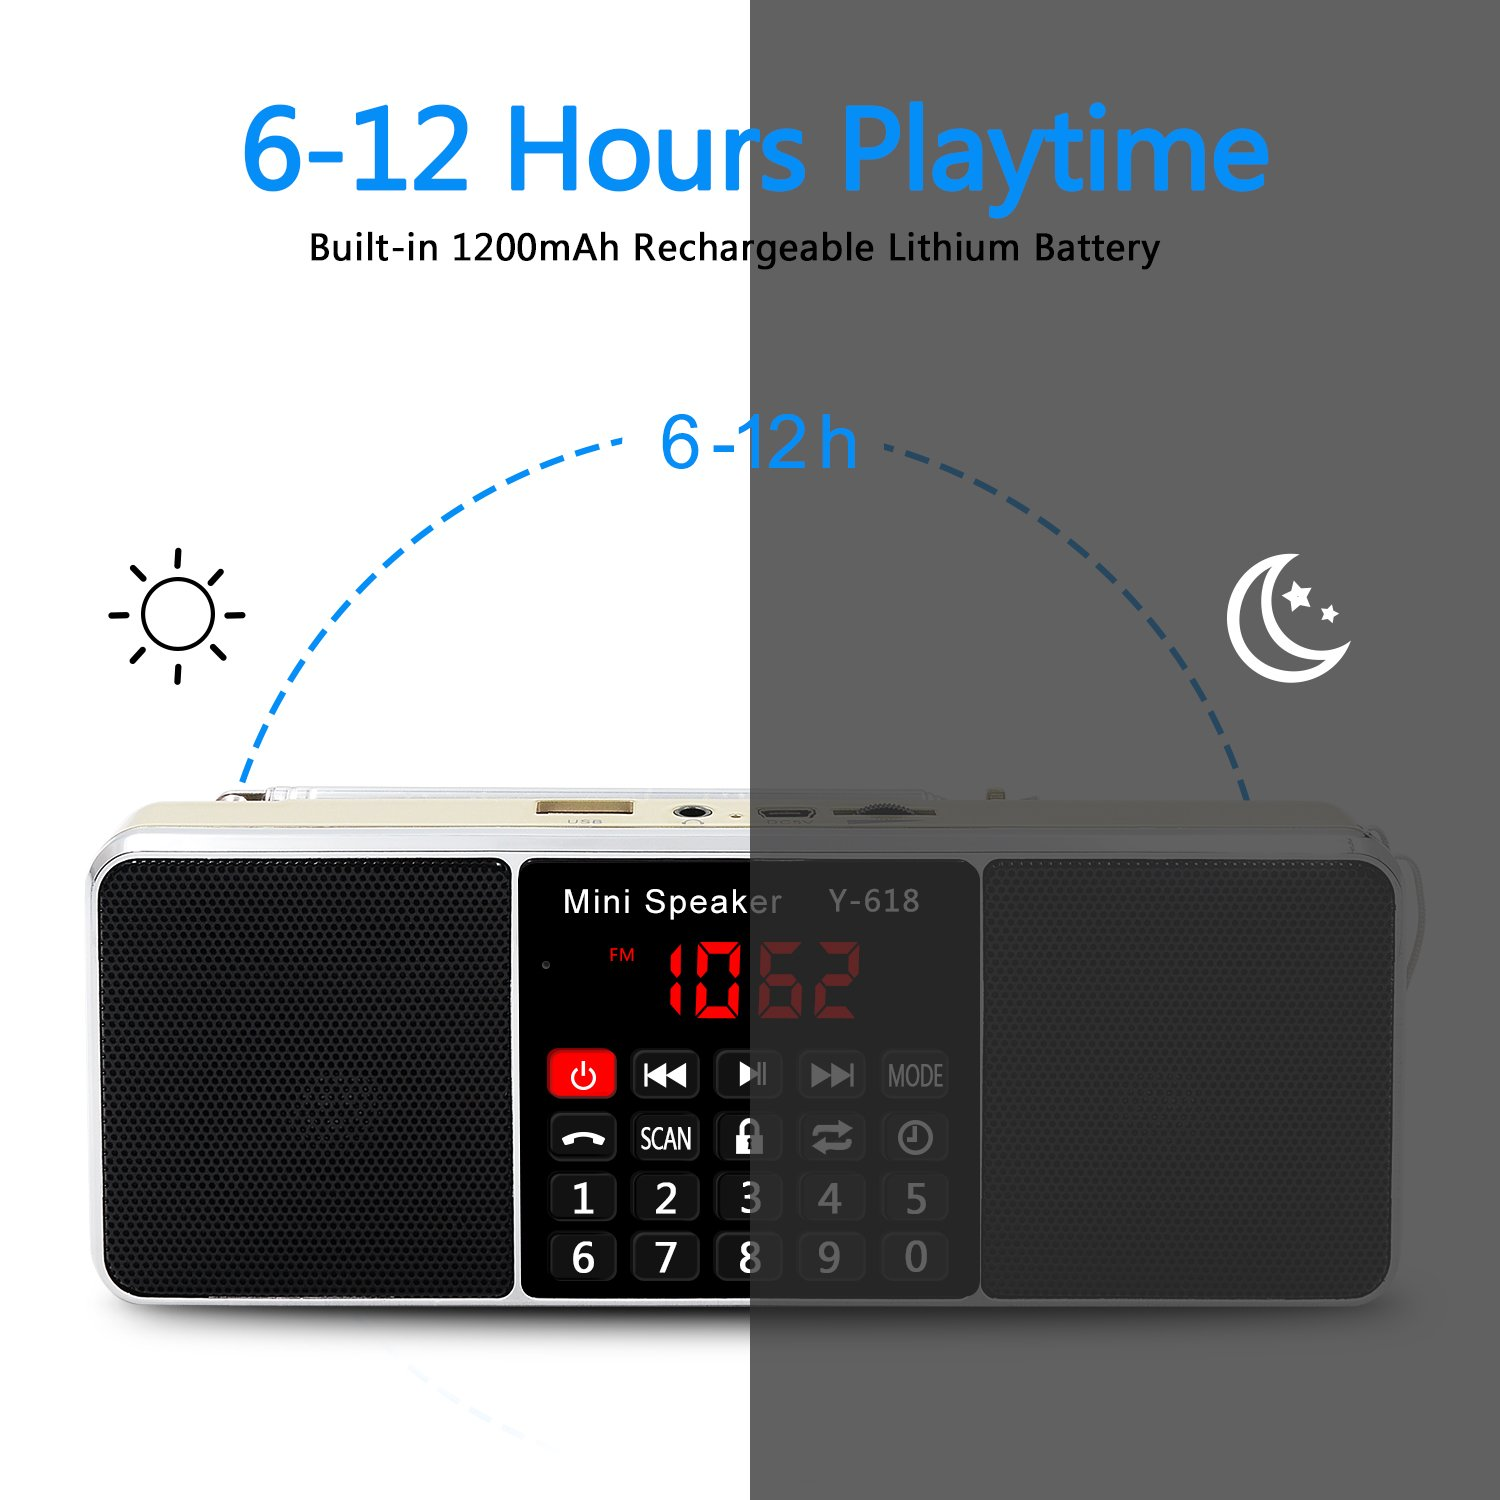 LEFON Multifunction Digital AM FM Radio Bluetooth Media Speaker MP3 Music Player Support TF Card/USB Disk with LED Screen Display and Setting Timing Shutdown Function (Gold-Upgraded Version) by Lefon (Image #4)